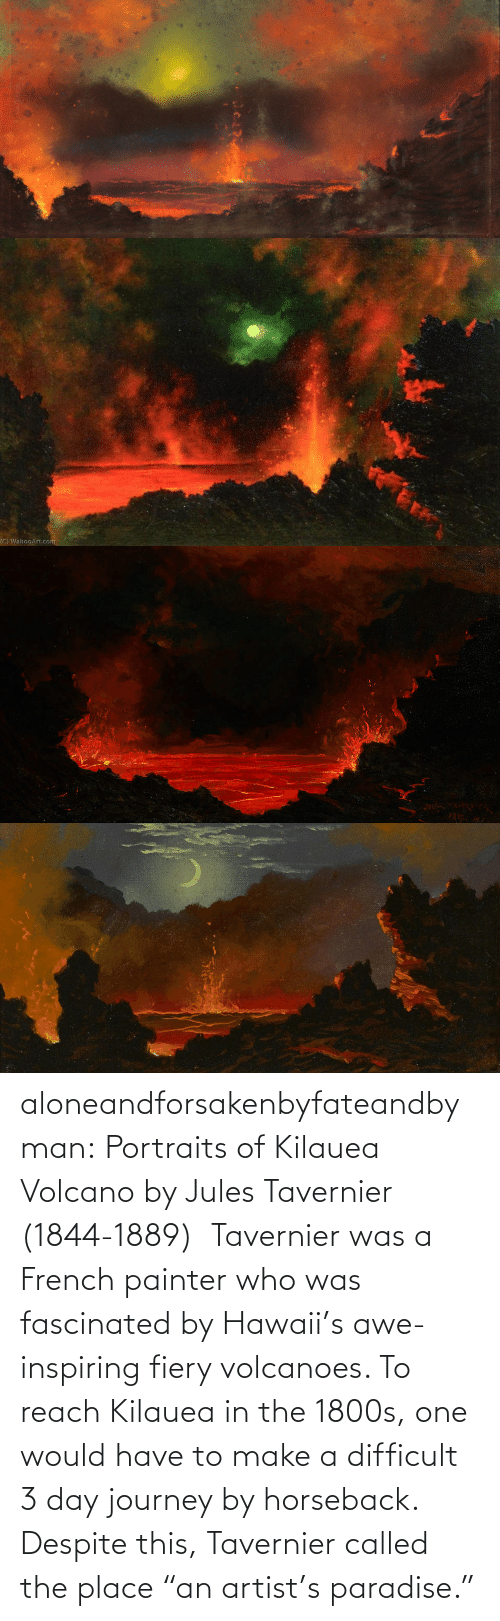 """Despite: aloneandforsakenbyfateandbyman:  Portraits of Kilauea Volcano by Jules Tavernier (1844-1889)   Tavernier was a French painter who was fascinated by Hawaii's awe-inspiring fiery volcanoes. To reach Kilauea in the 1800s, one would have to make a difficult 3 day journey by horseback. Despite this, Tavernier called the place """"an artist's paradise."""""""